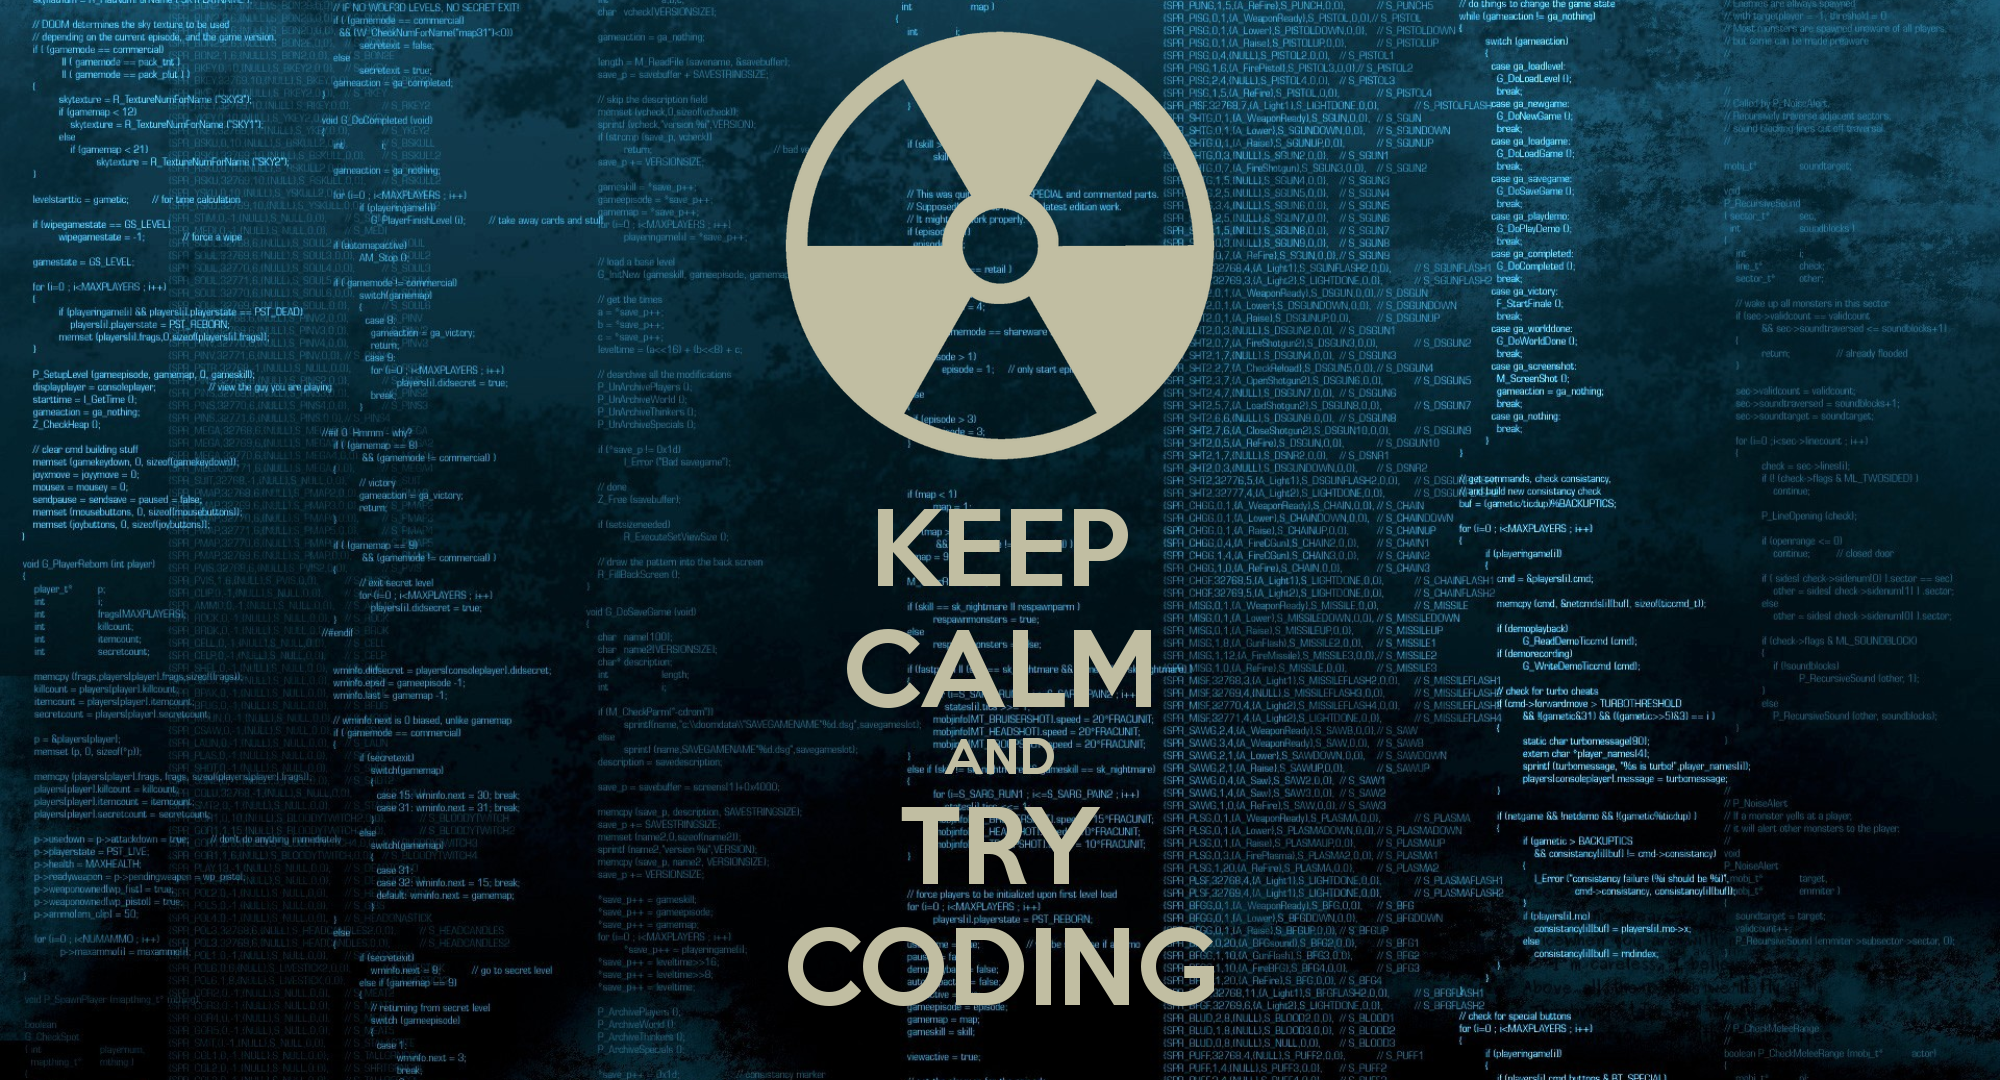 Keep Calm and Try Coding.